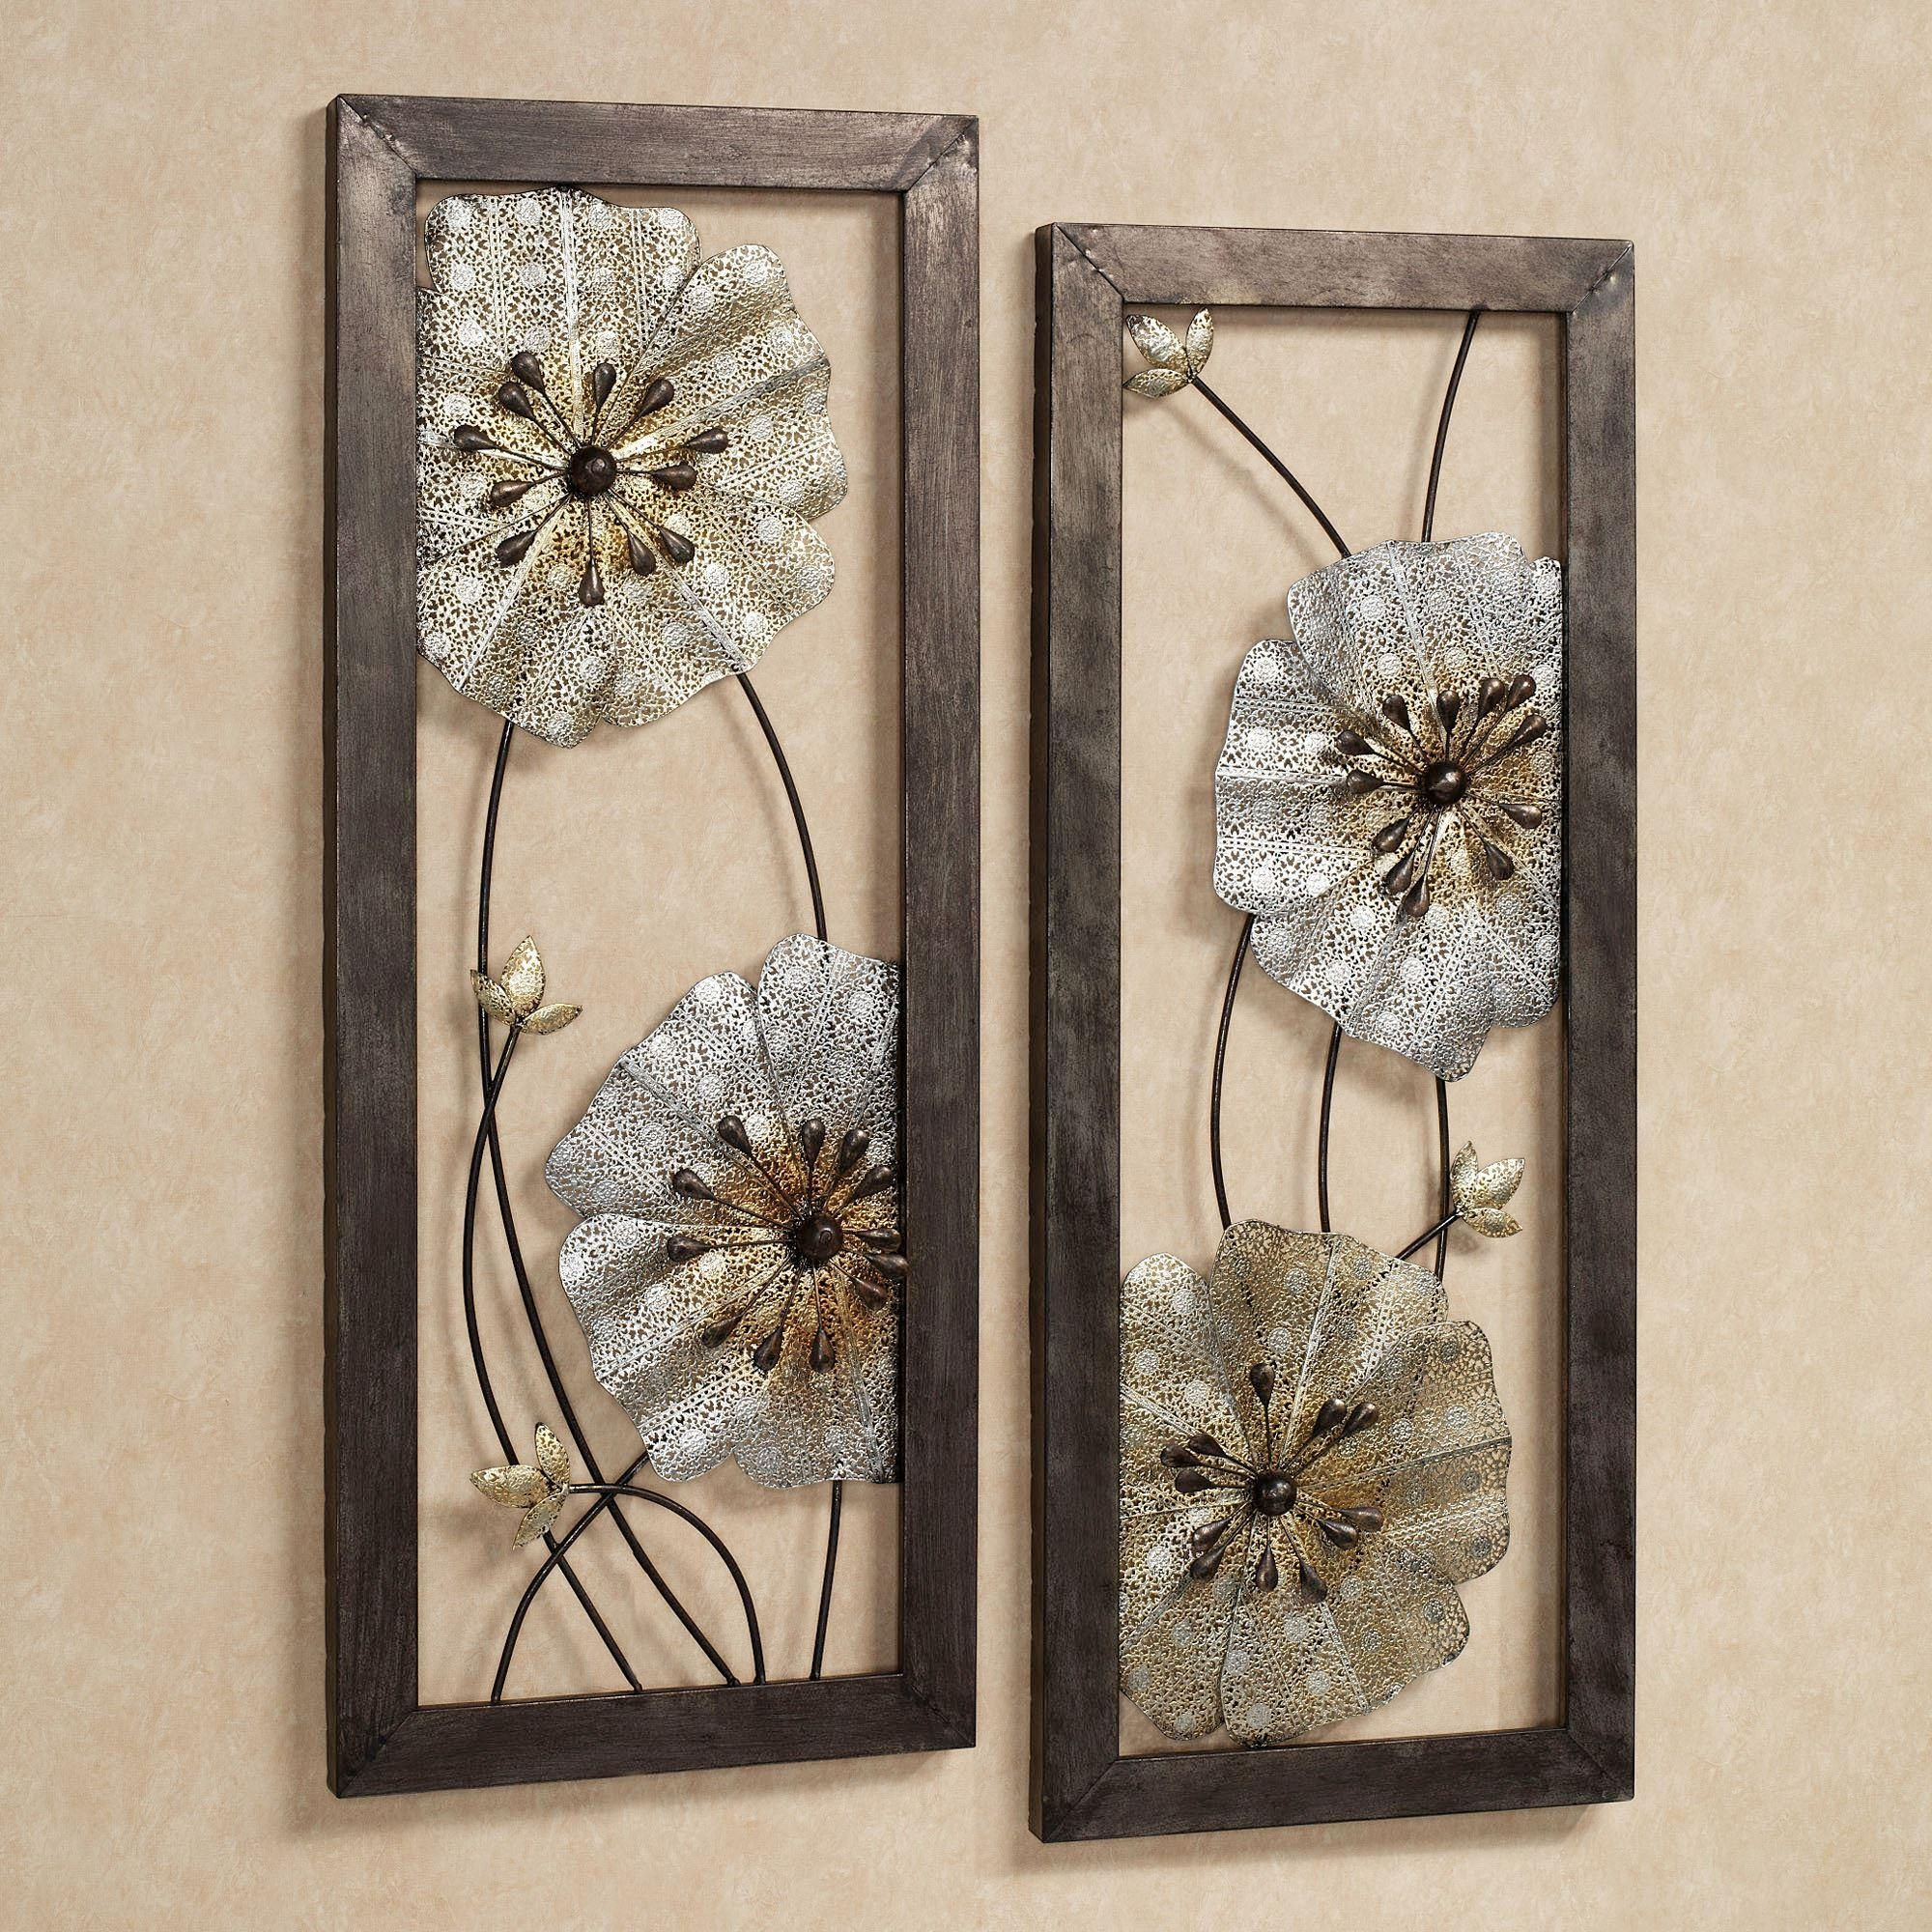 Natural Elements Wall Art | Touch Of Class Throughout Iron Art For Walls (Image 8 of 20)